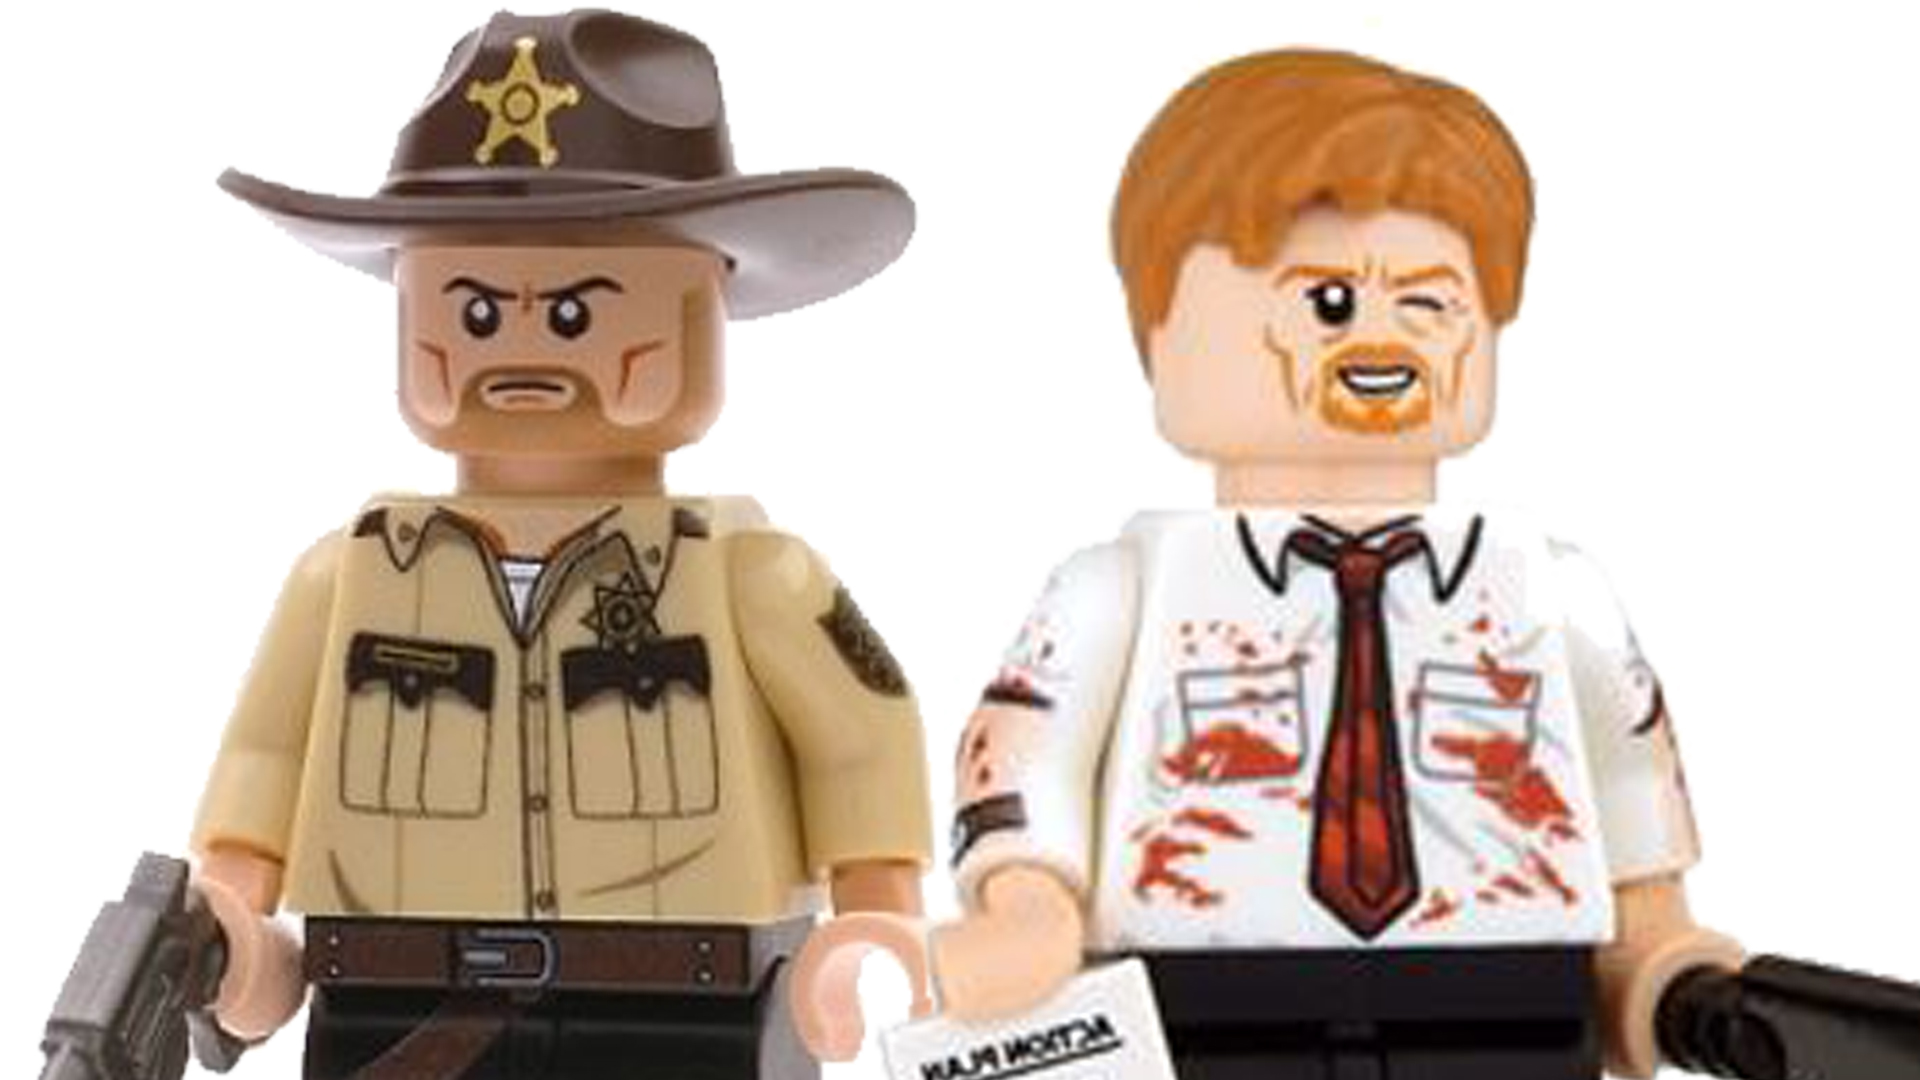 Brick Grimes and Shaun of the Dead